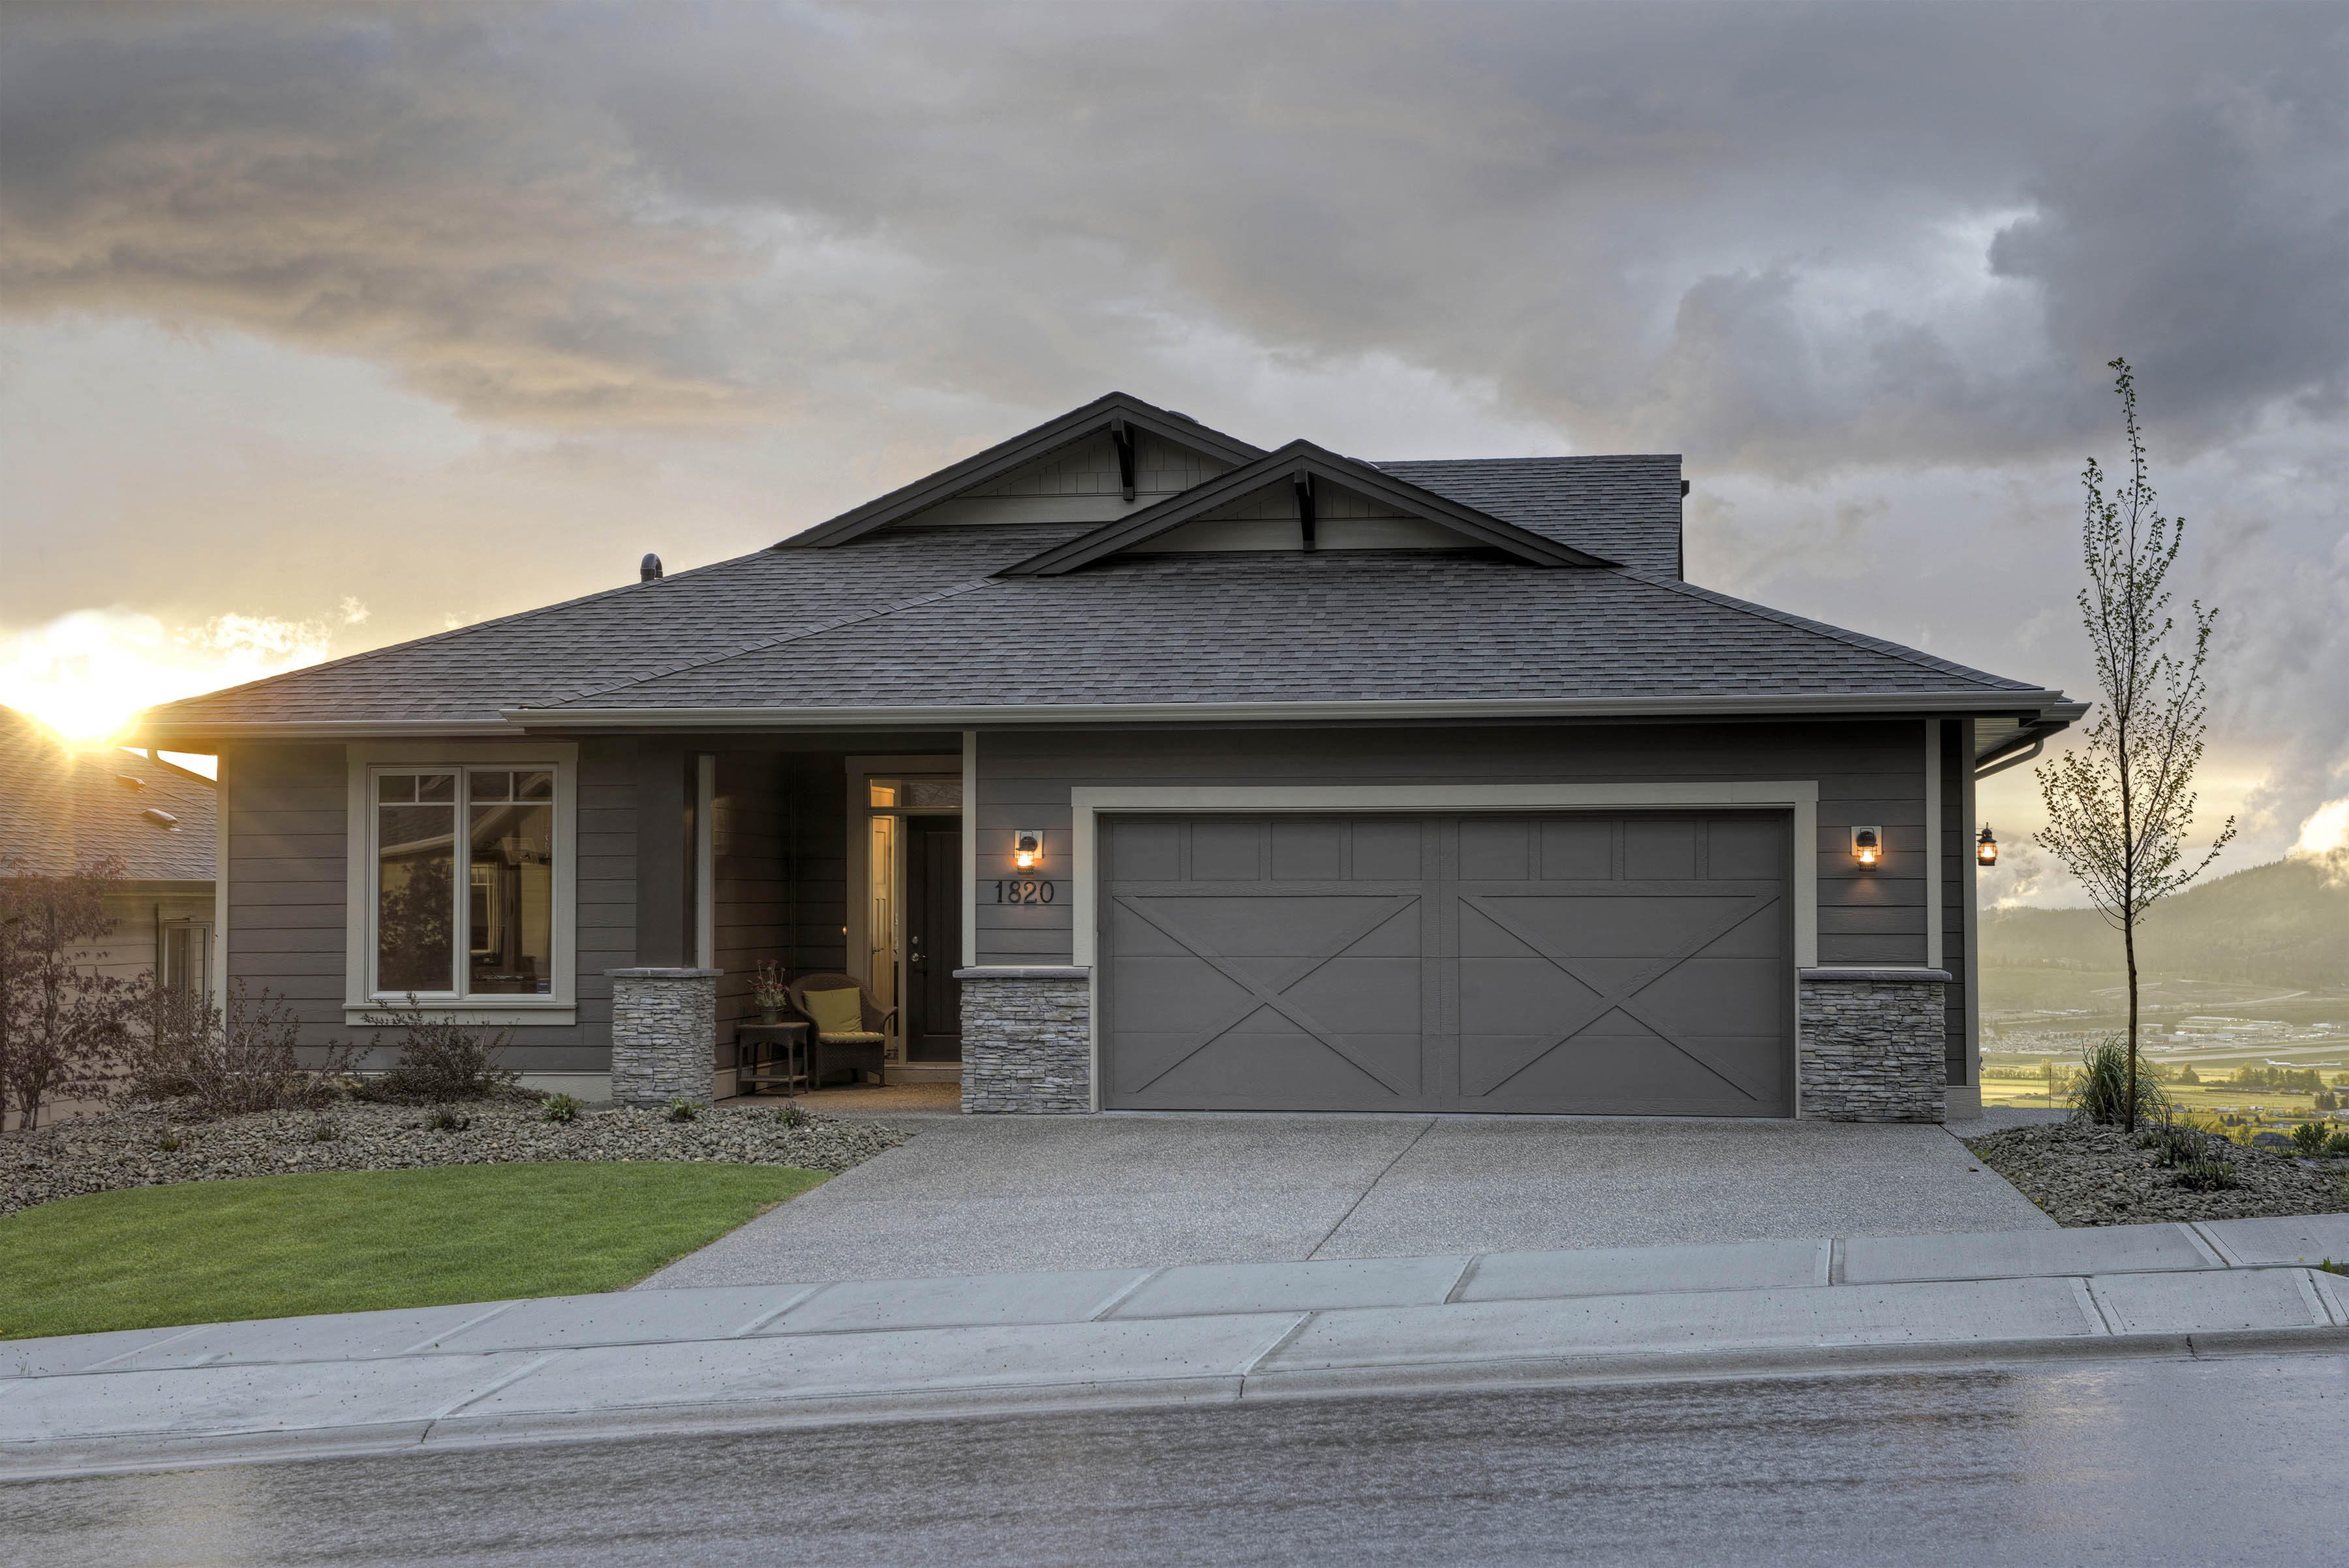 Tower Ranch Showhome exterior